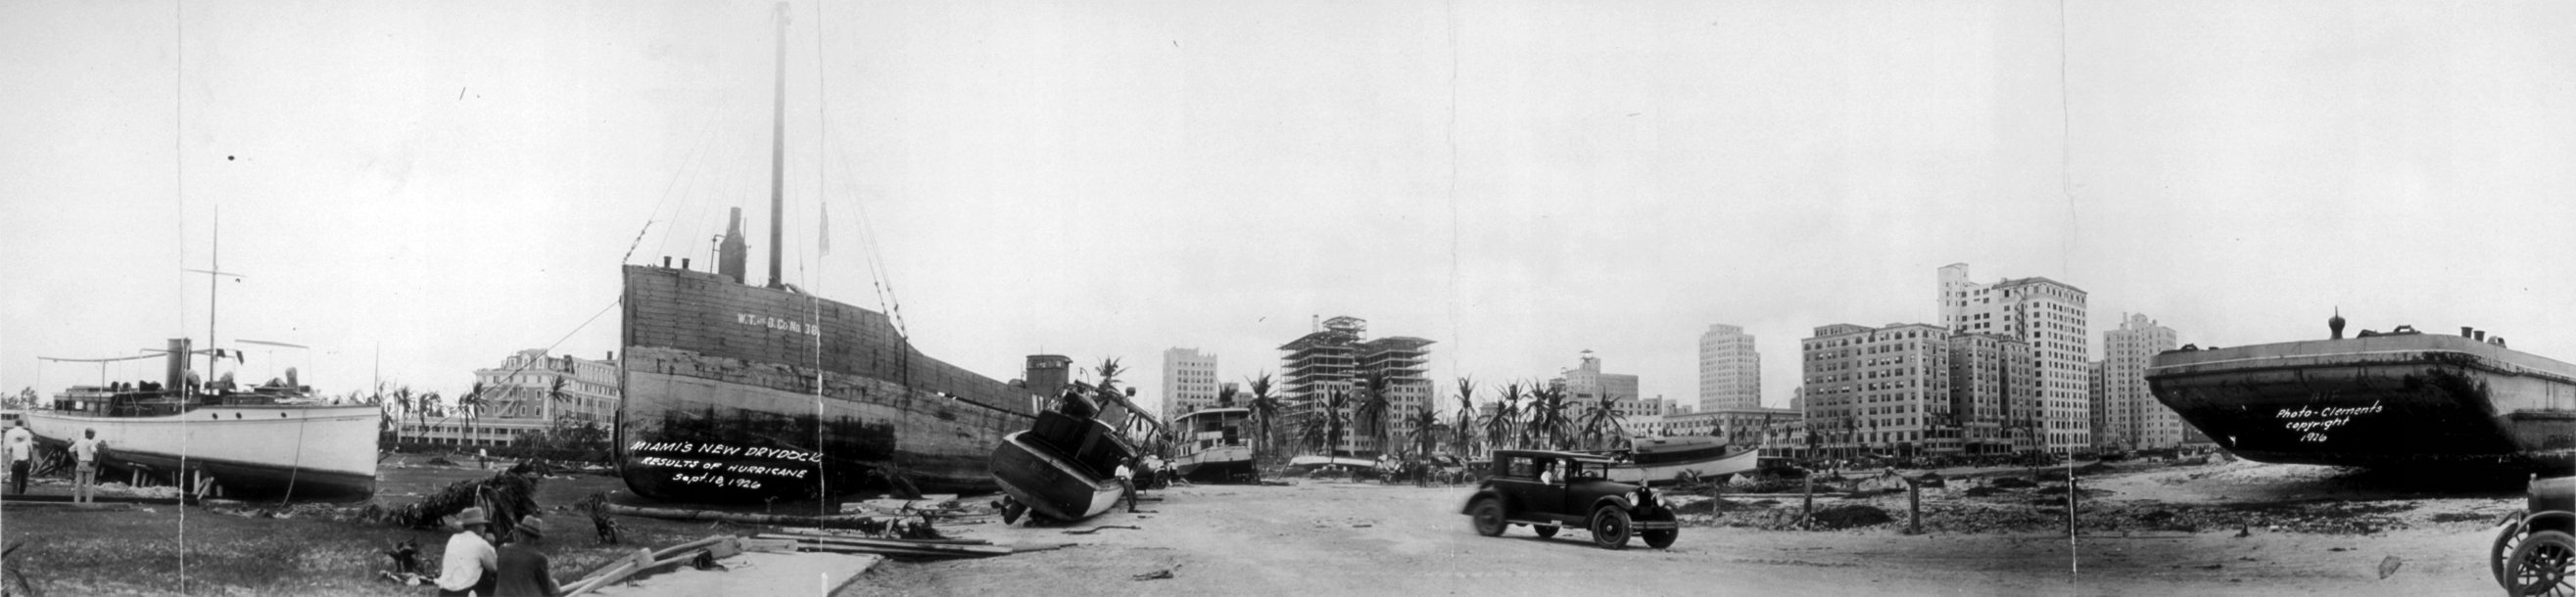 http://upload.wikimedia.org/wikipedia/commons/b/b9/1926_Miami_Hurricane_damage.jpg